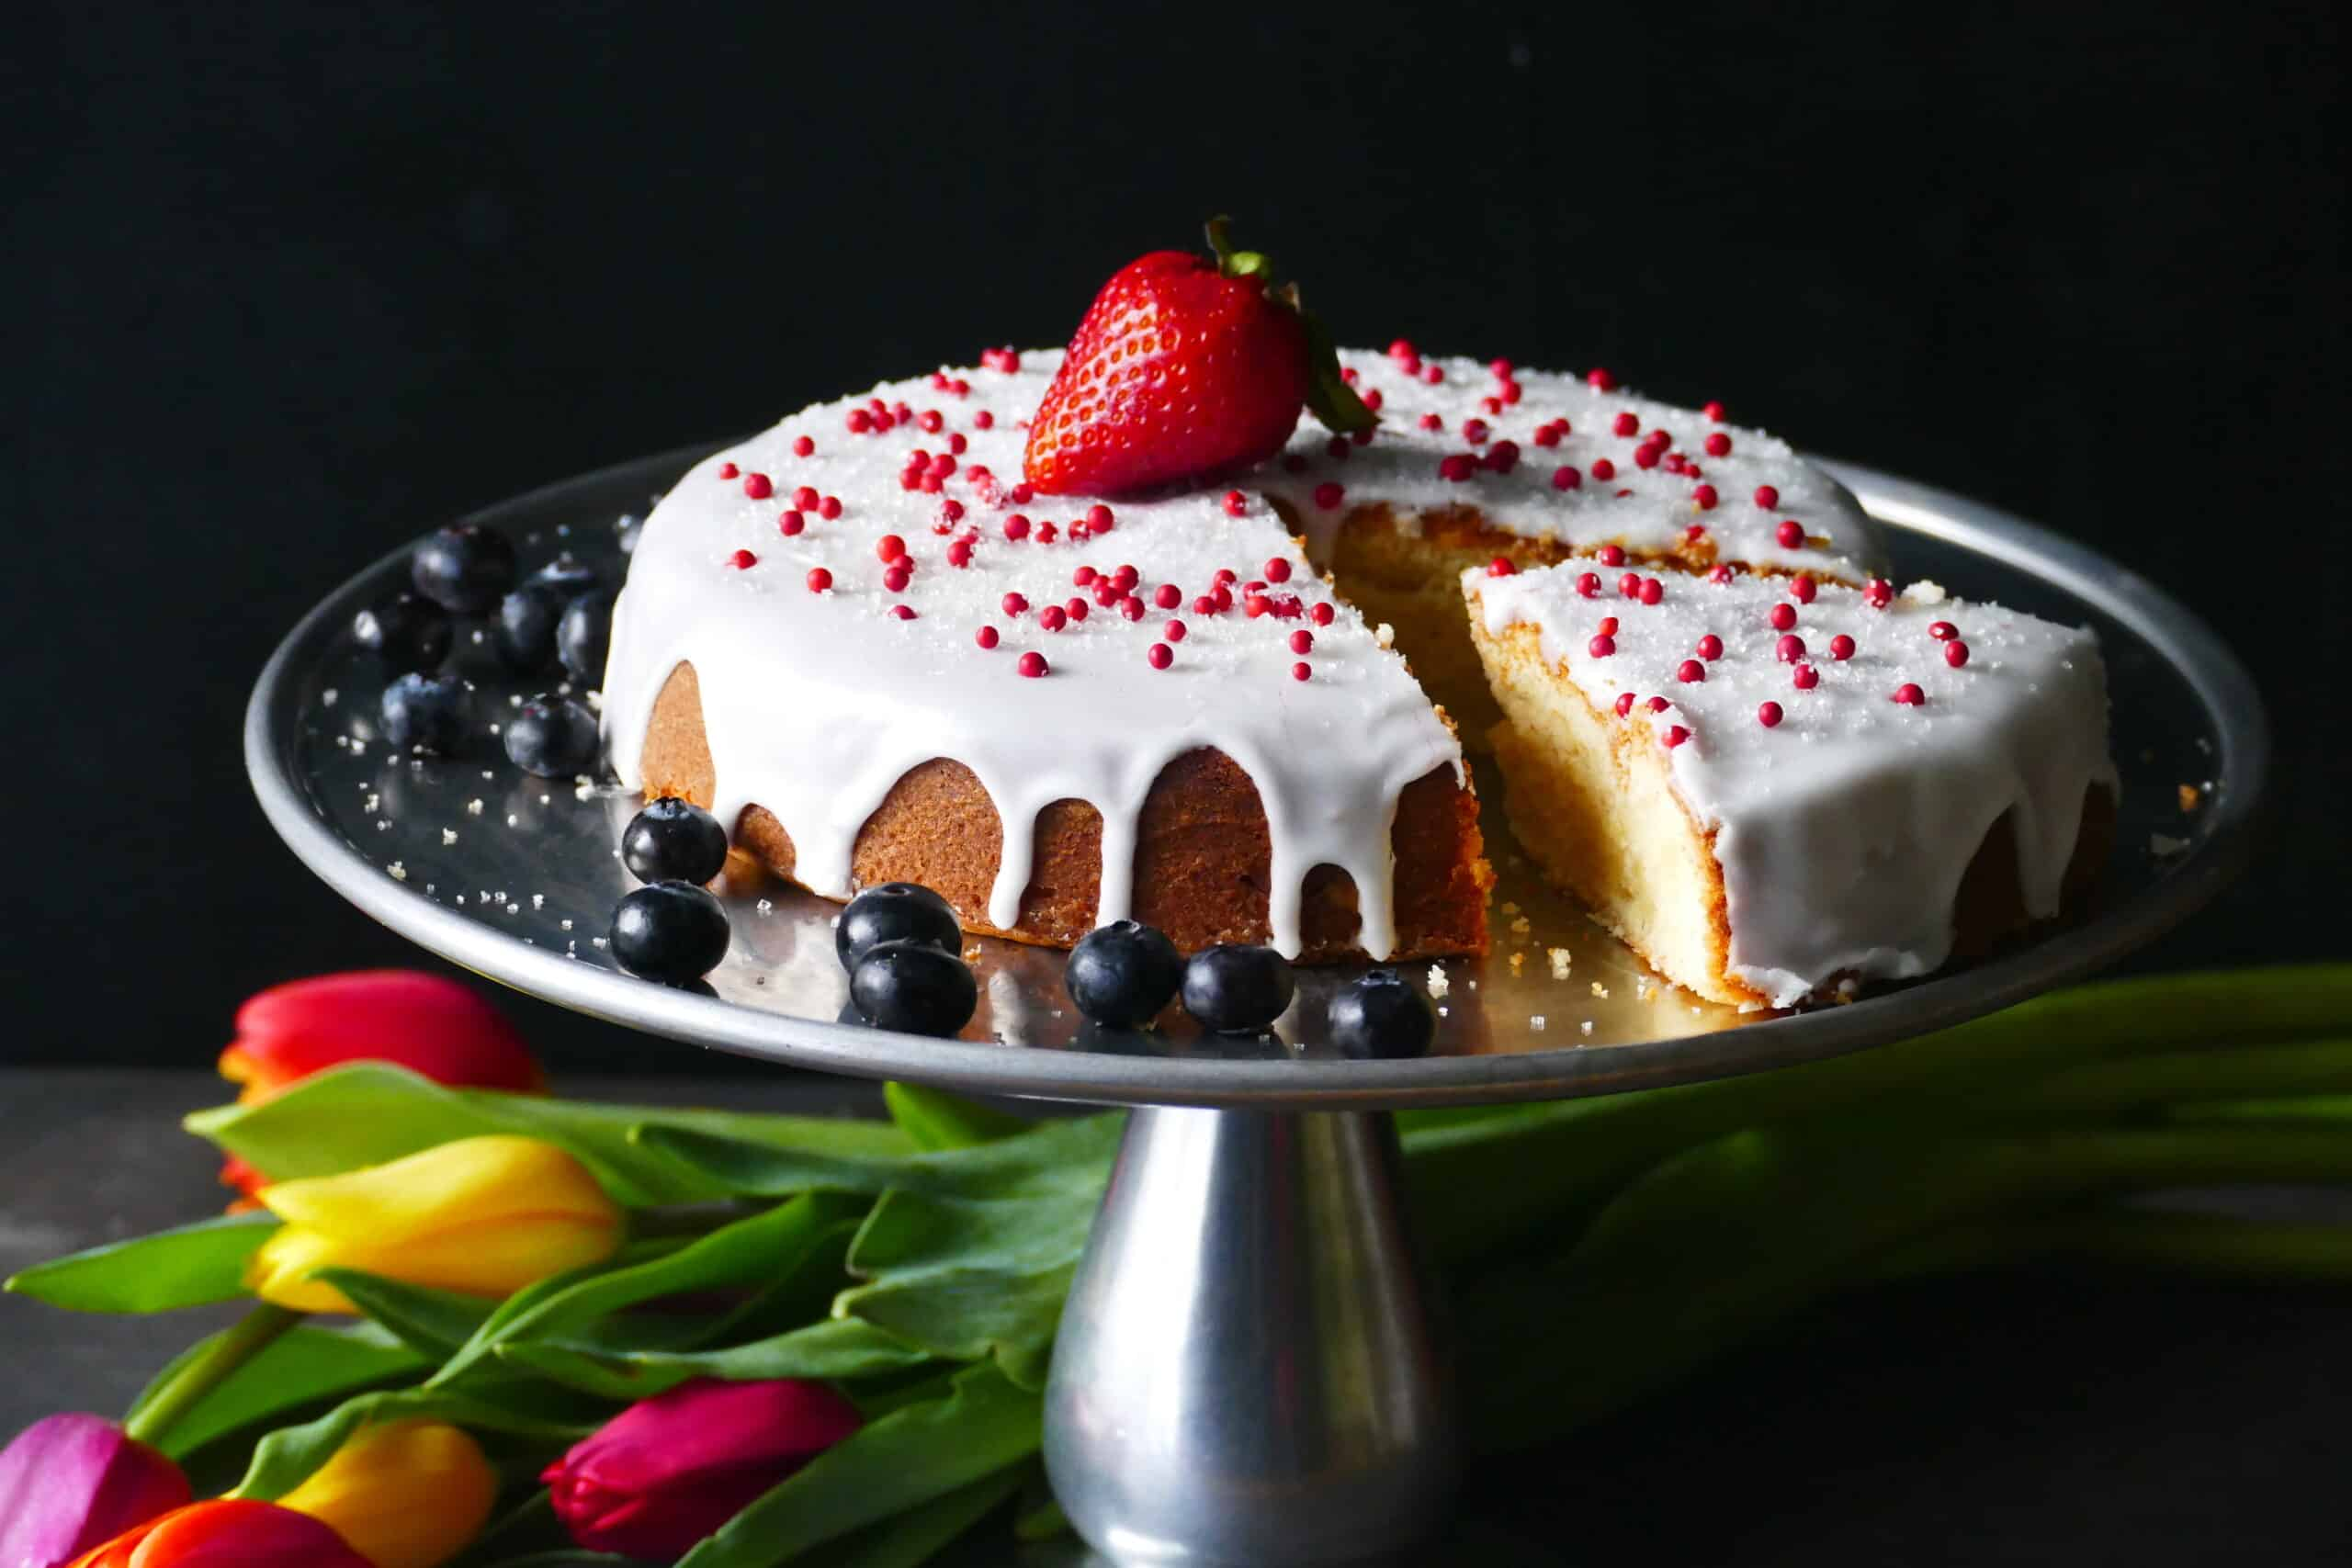 Pound cake on cake stand frosted with white frosting and topped with red balls and a ripe strawberry and blue berries on the side